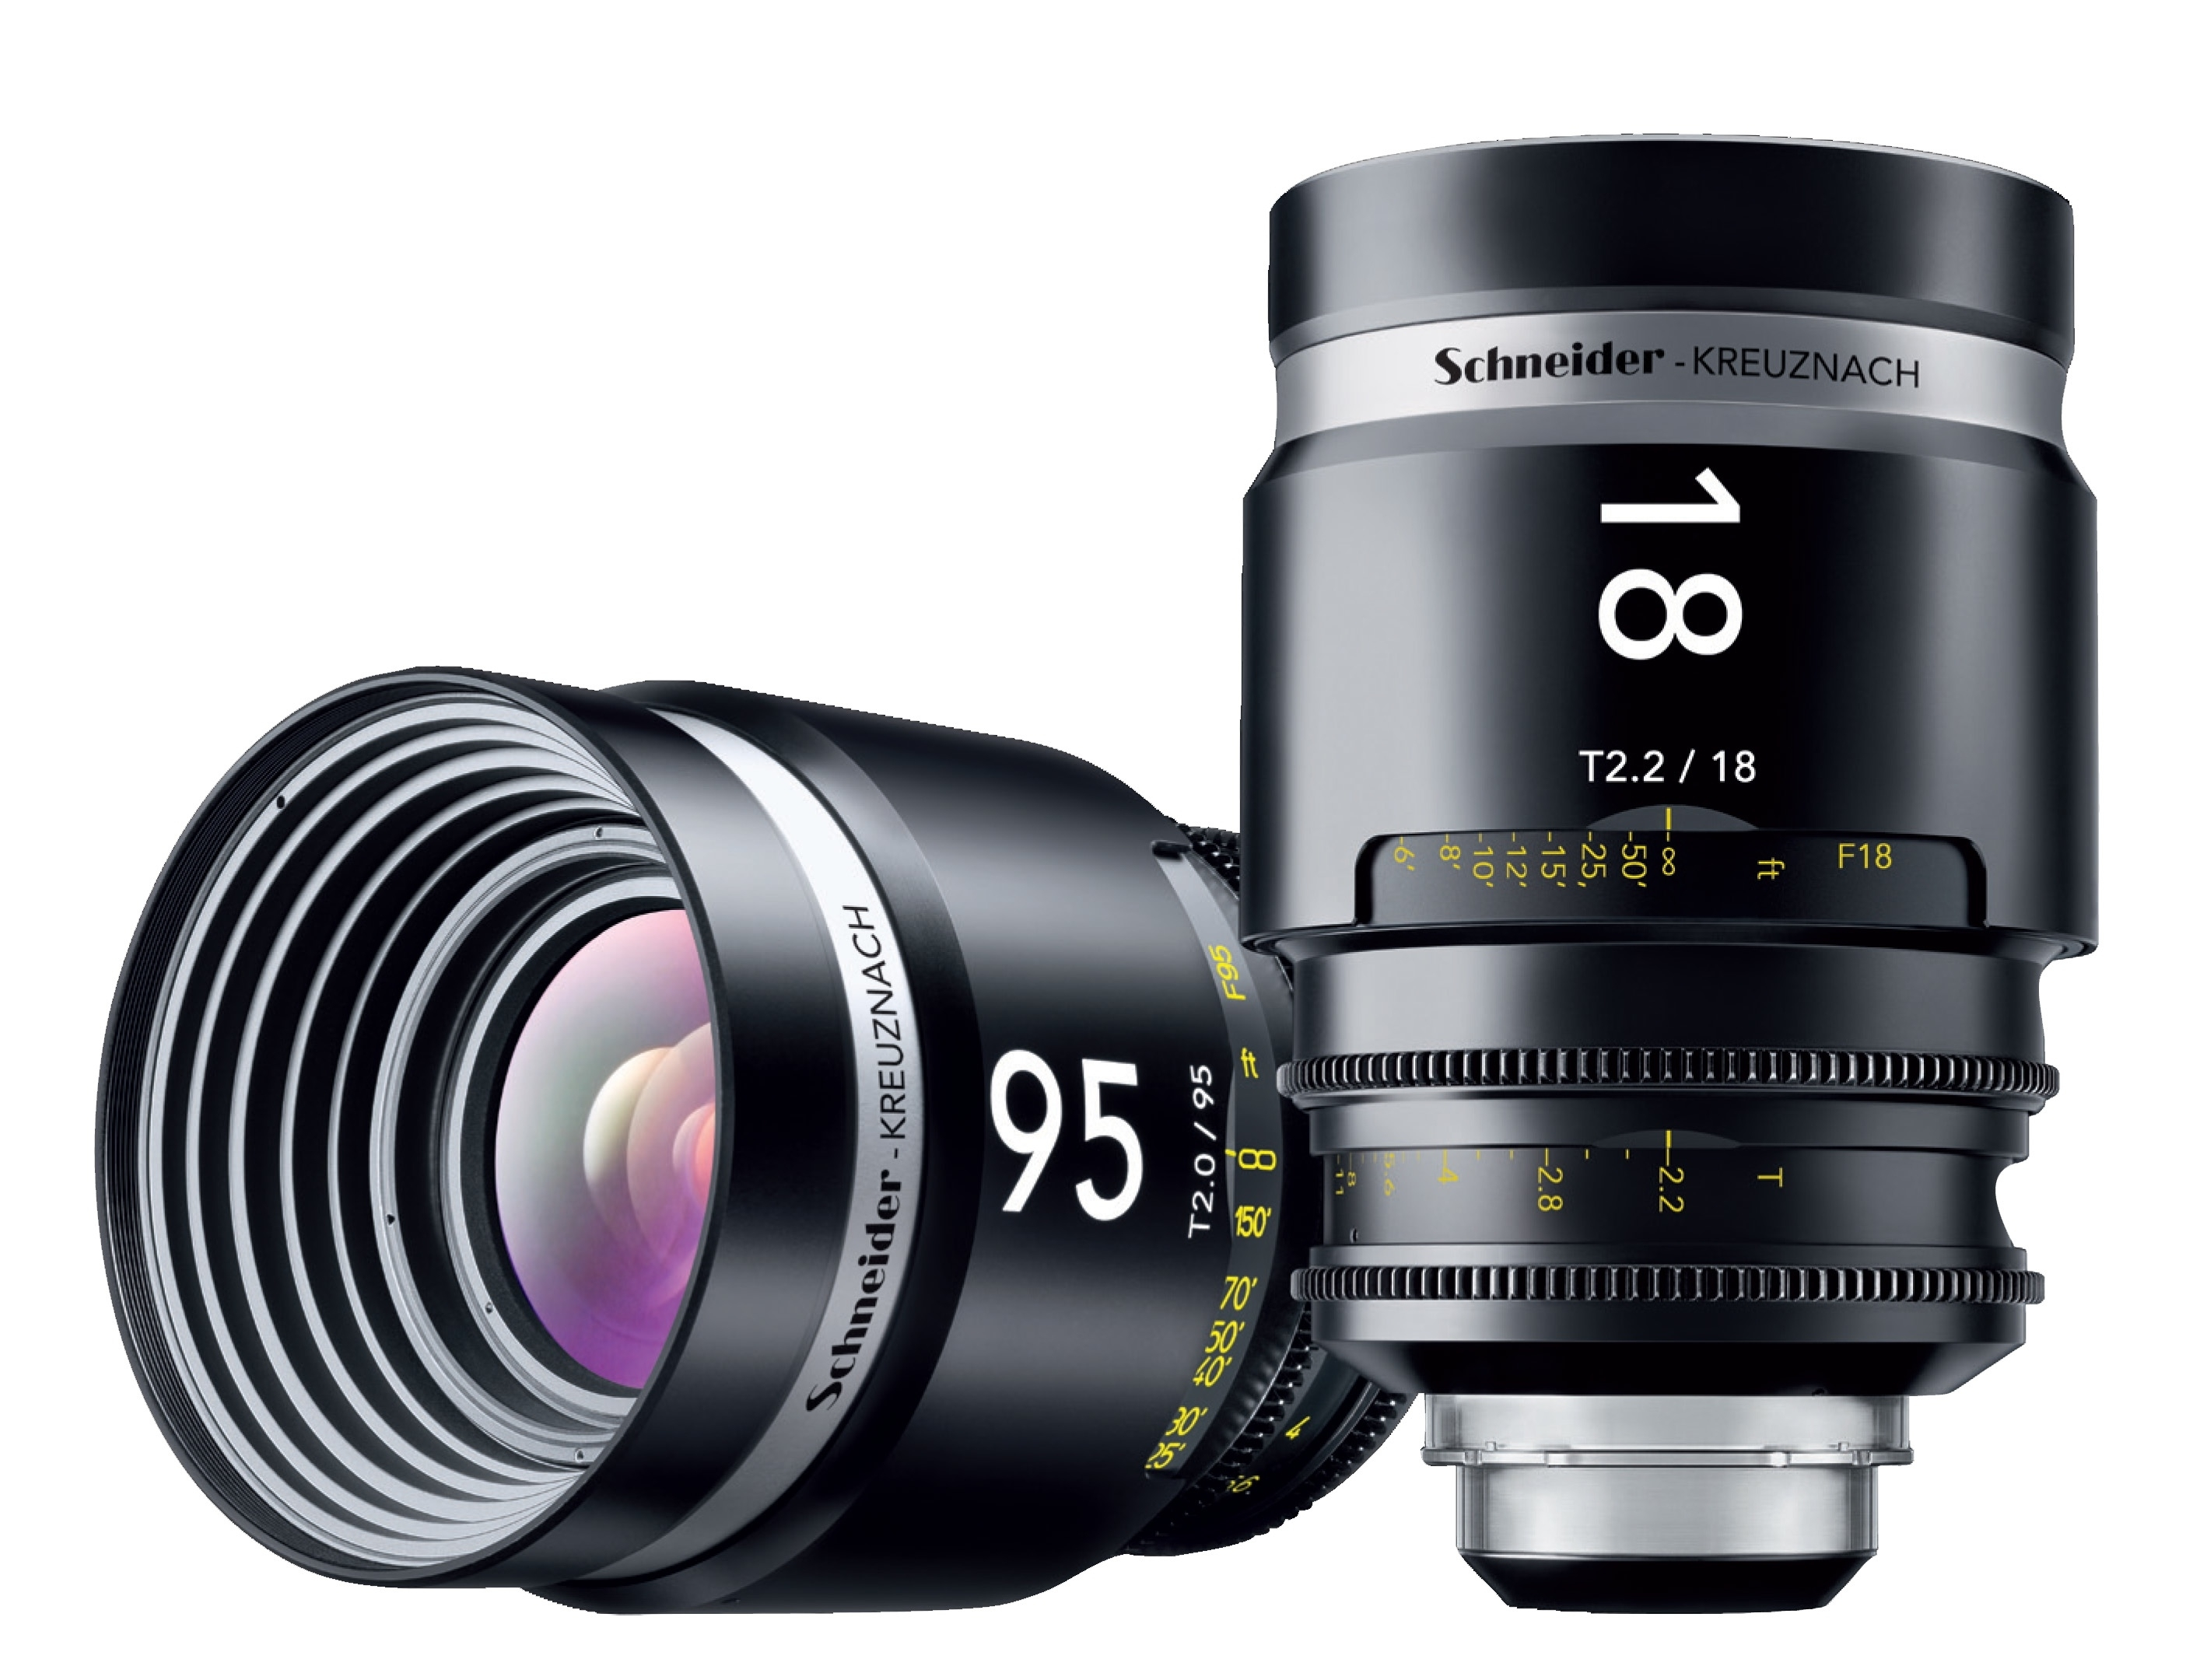 schneider-cine-xenar-iii-primes-18mm-and-95mm-lenses